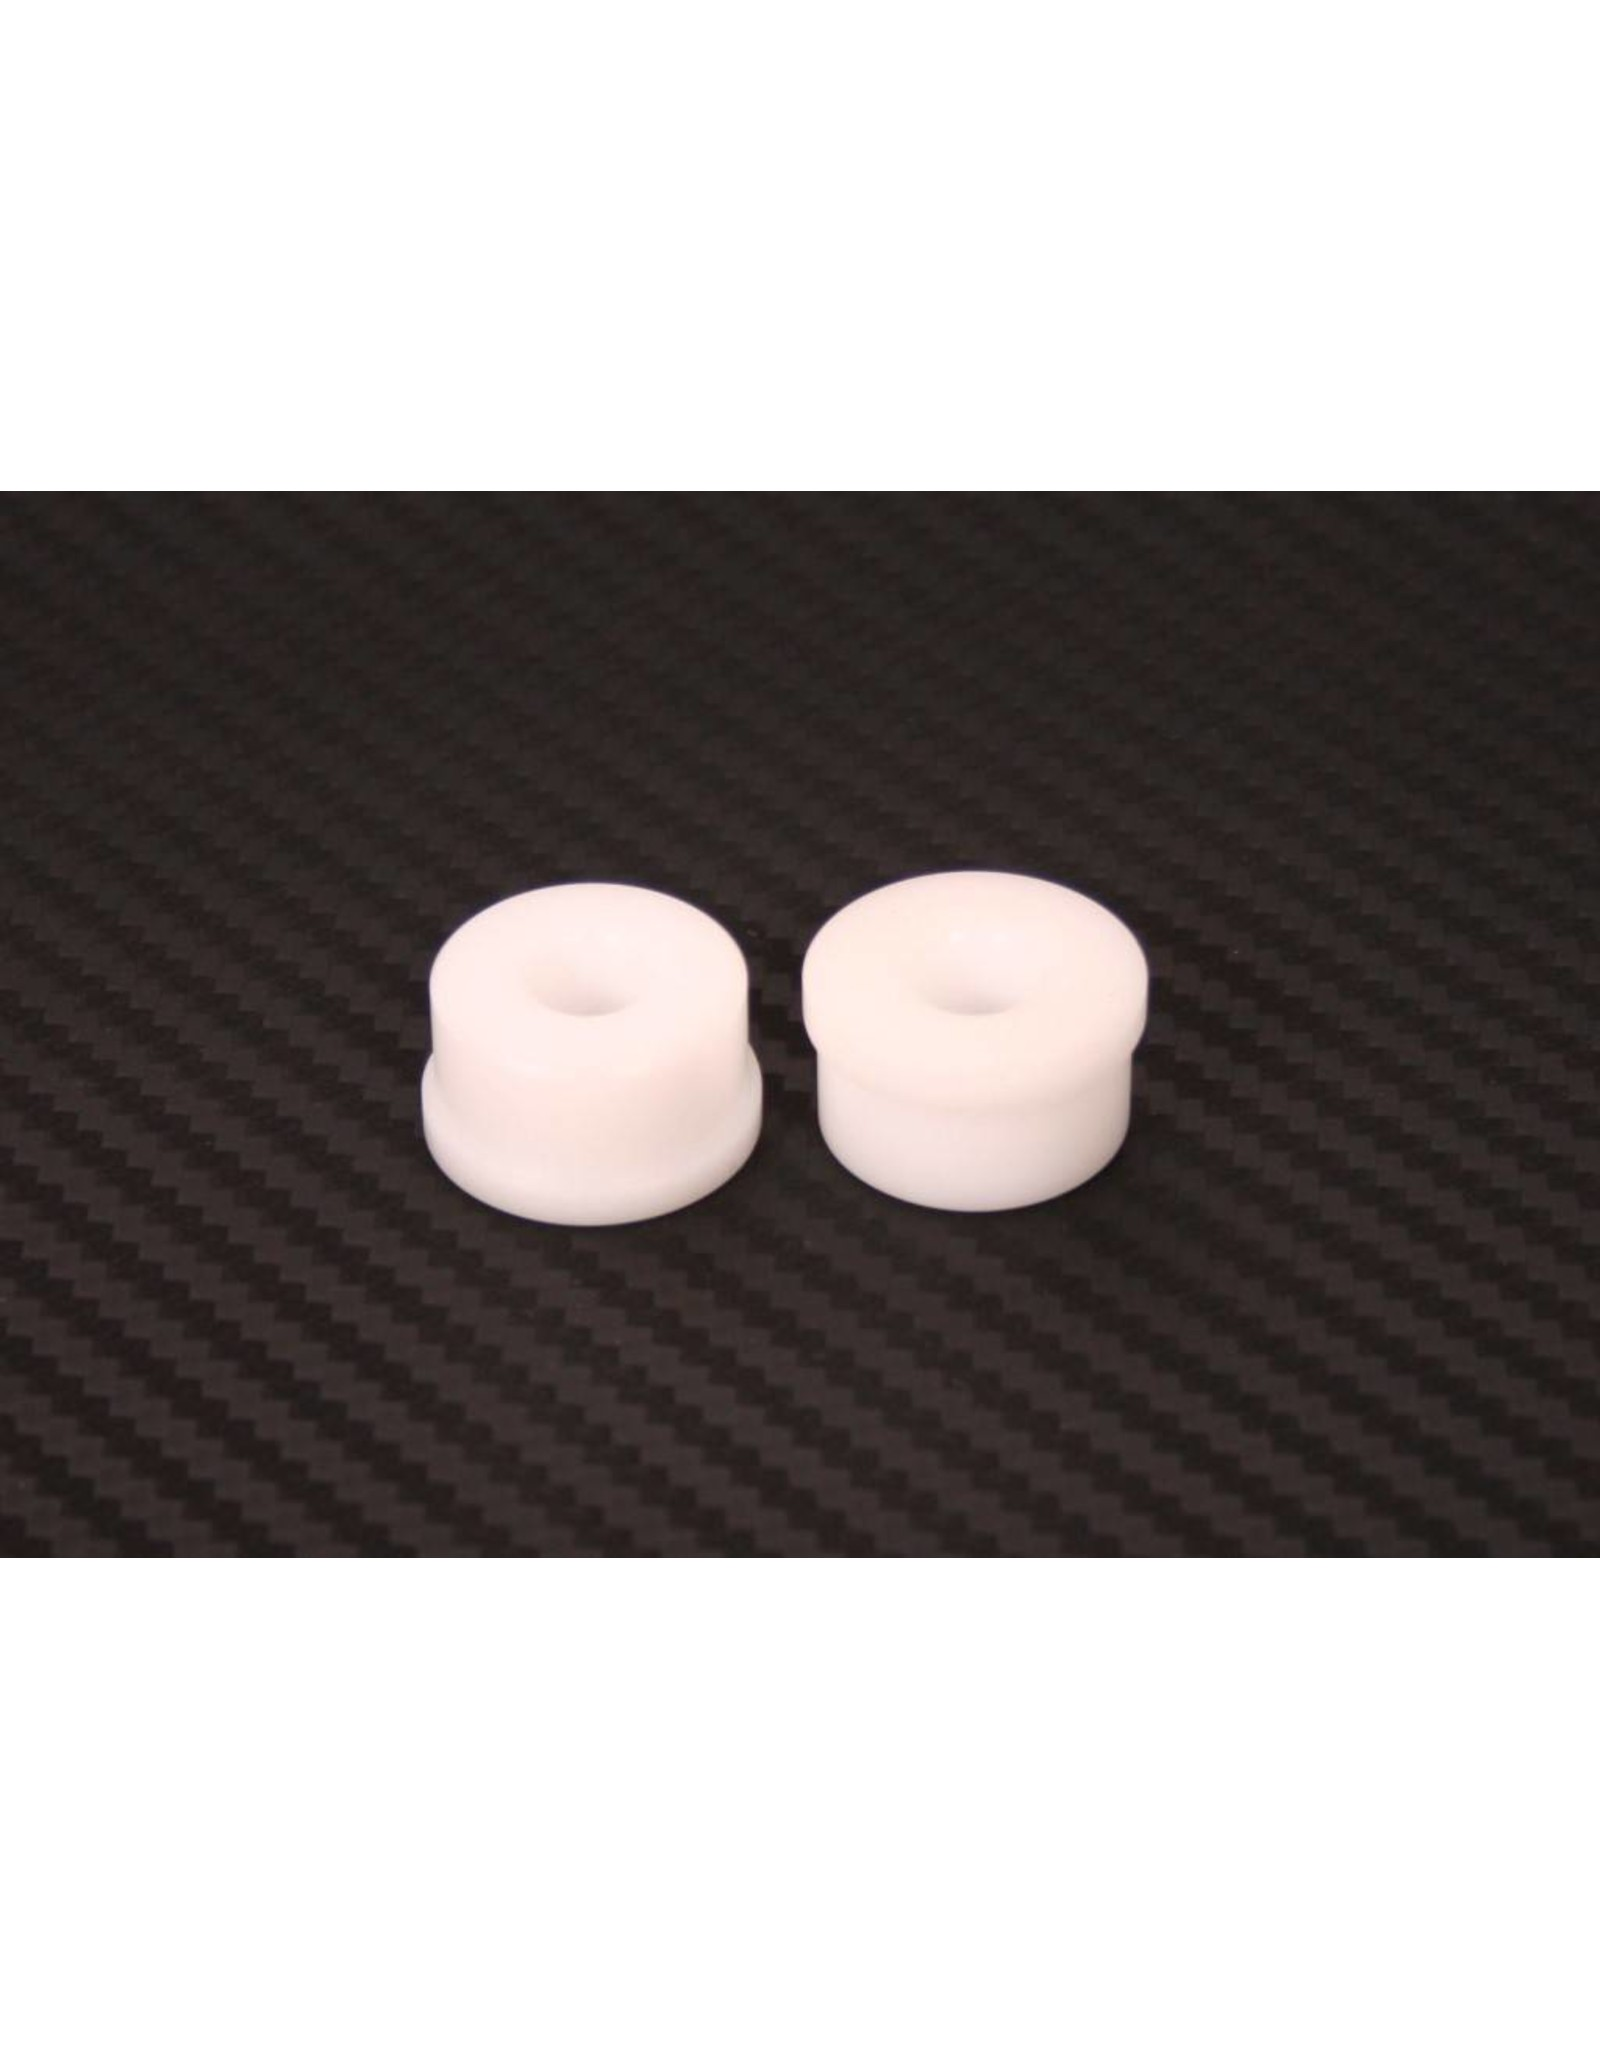 Nylon Shift Bushes for Opel and Vauxhall